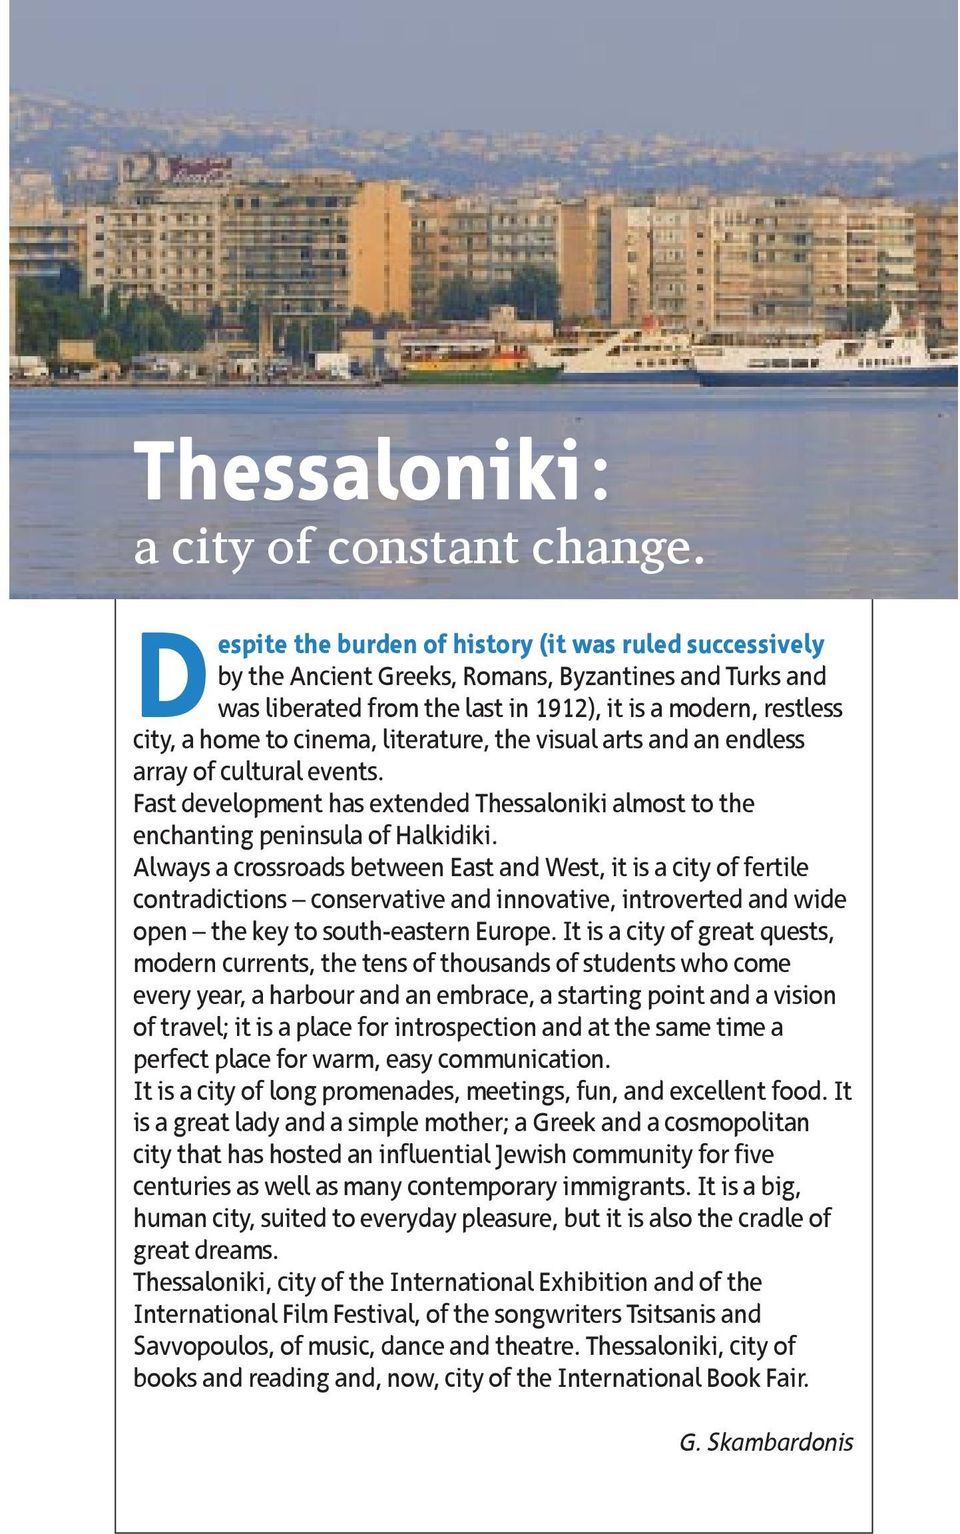 literature, the visual arts and an endless array of cultural events. Fast development has extended Thessaloniki almost to the enchanting peninsula of Halkidiki.